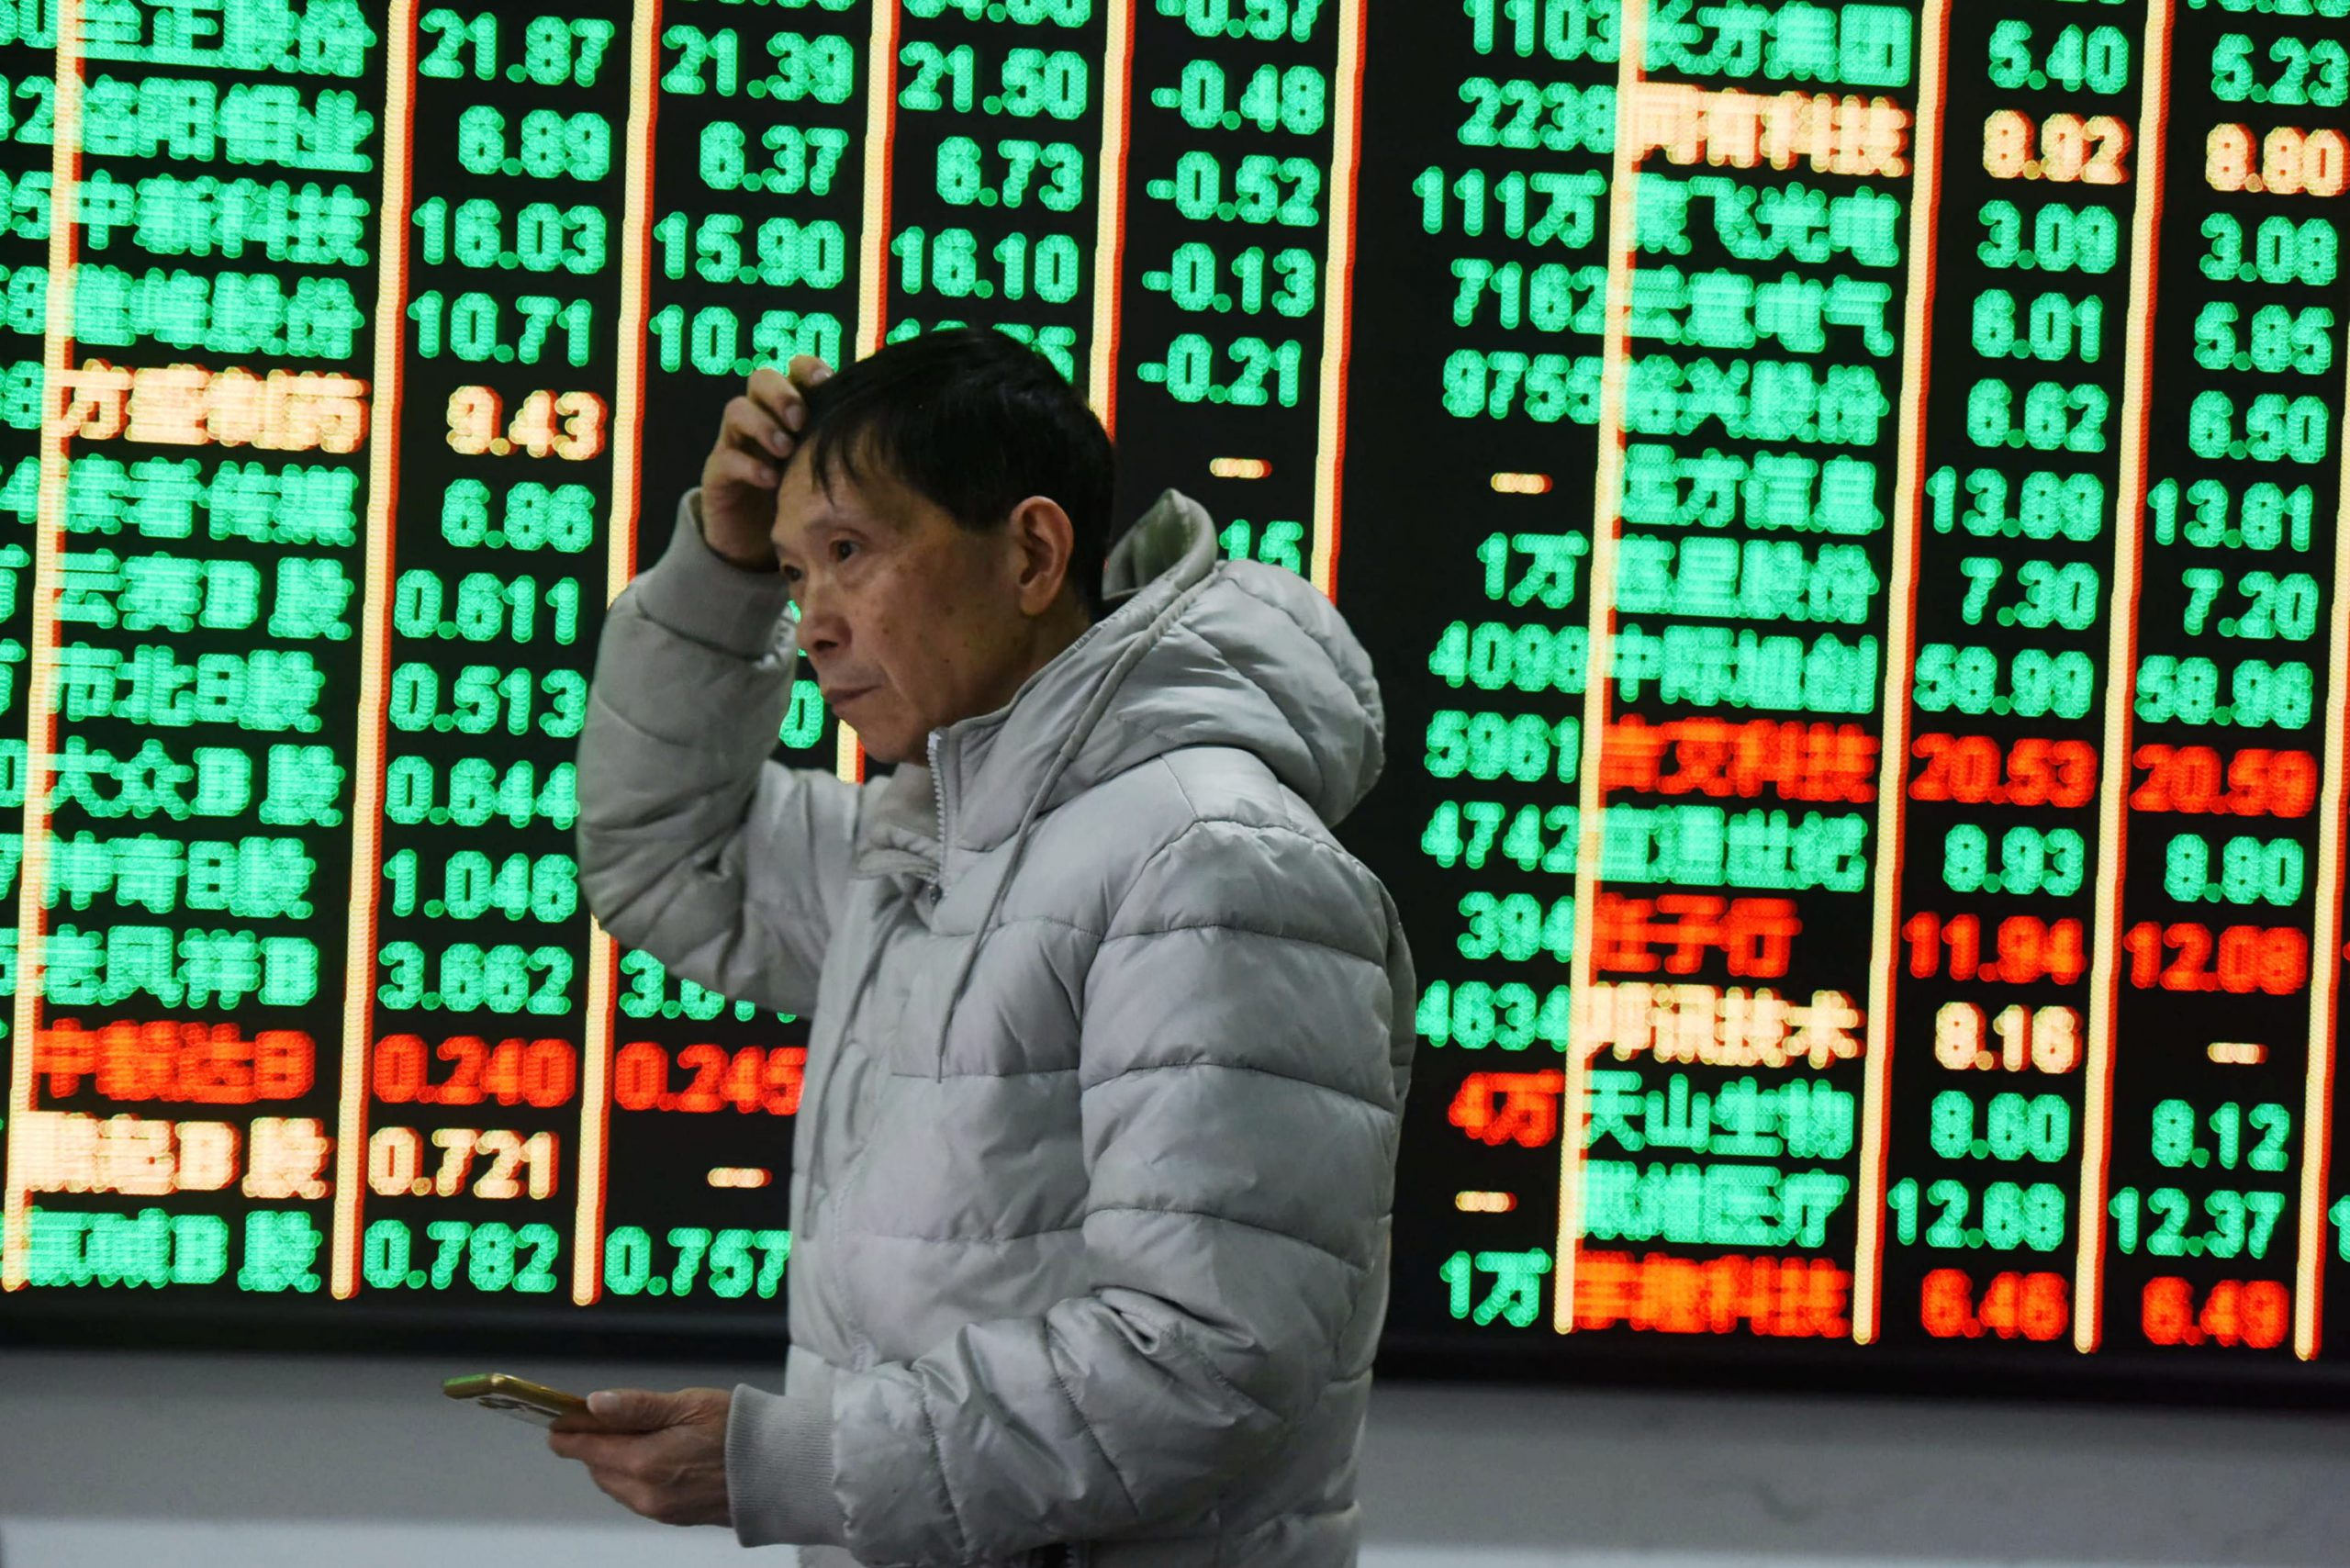 China market opens, Iowa caucuses, Alphabet earnings: 3 things to watch for on Monday